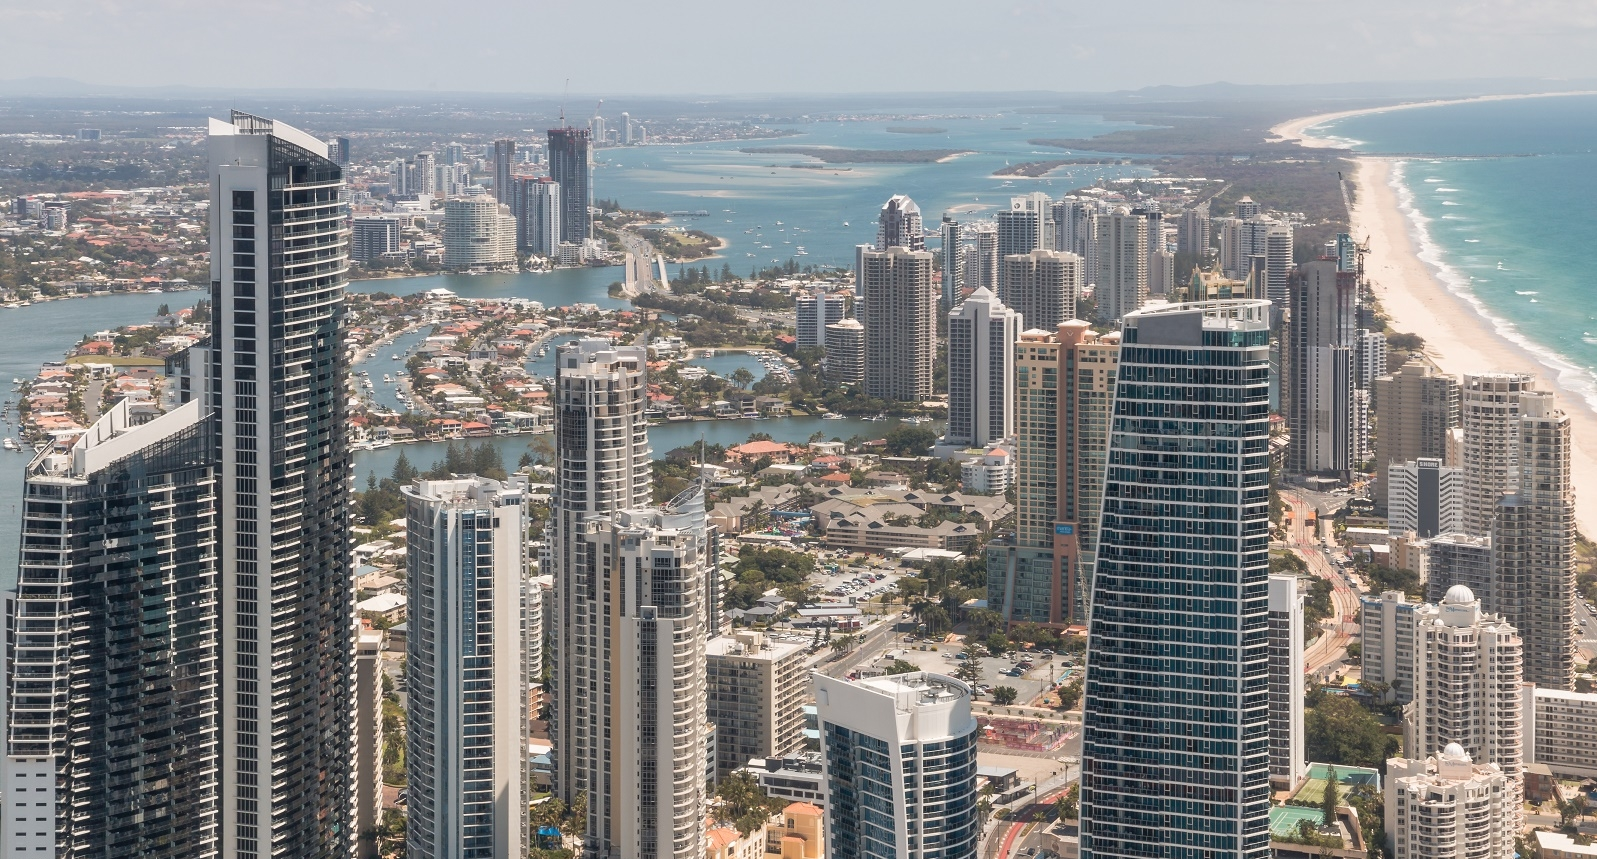 Looking north towards Surfers Paradise, Main Beach and Southport. While high-rises are symbolic of the Gold Coast, they generally make poor investments due to the lack of owner-occupier demand and continuing issues of oversupply.